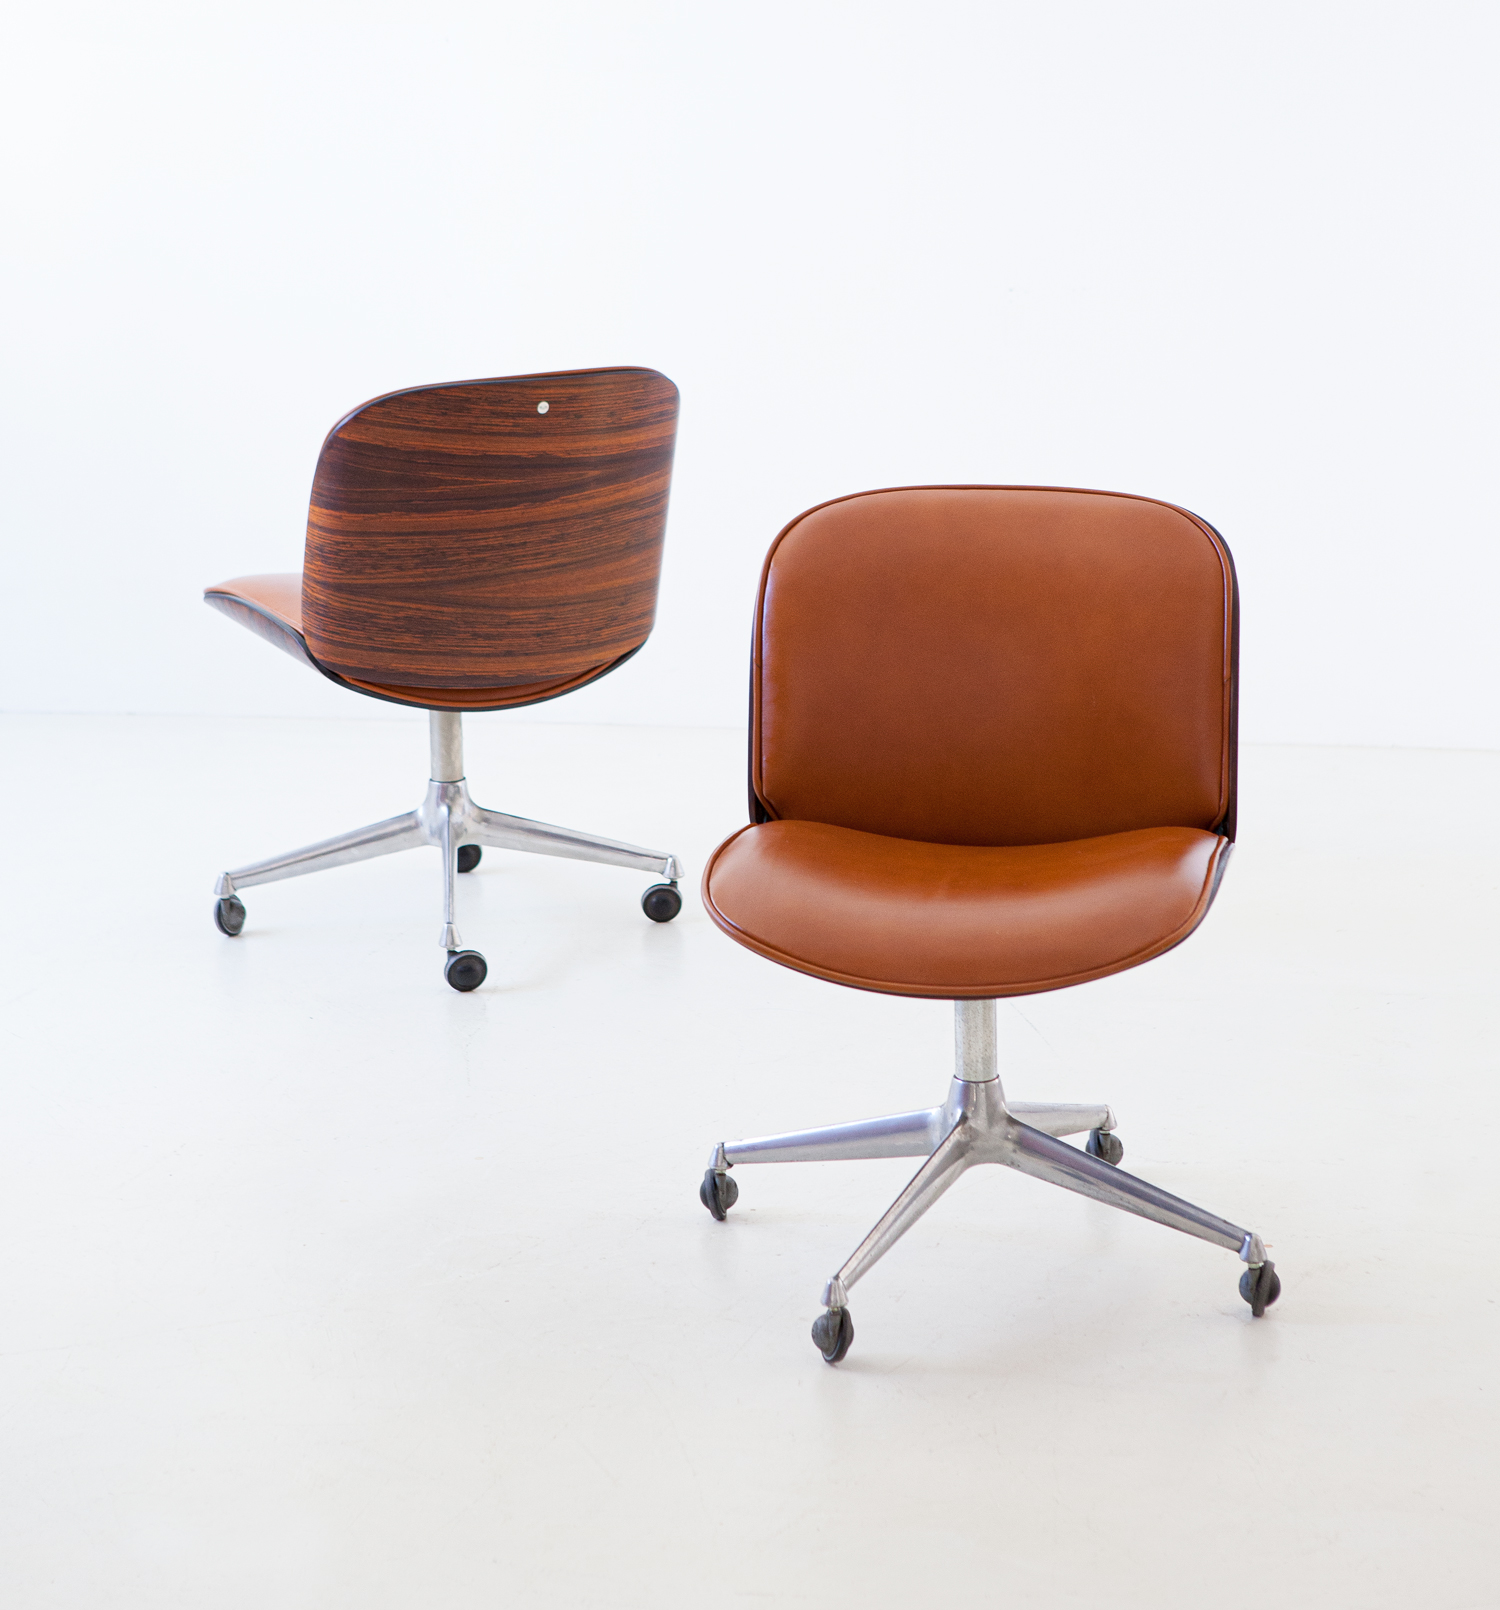 1950s-rosewood-and-cognac-leather-swivel-chair-by-ico-parisi-for-mim-2-se328